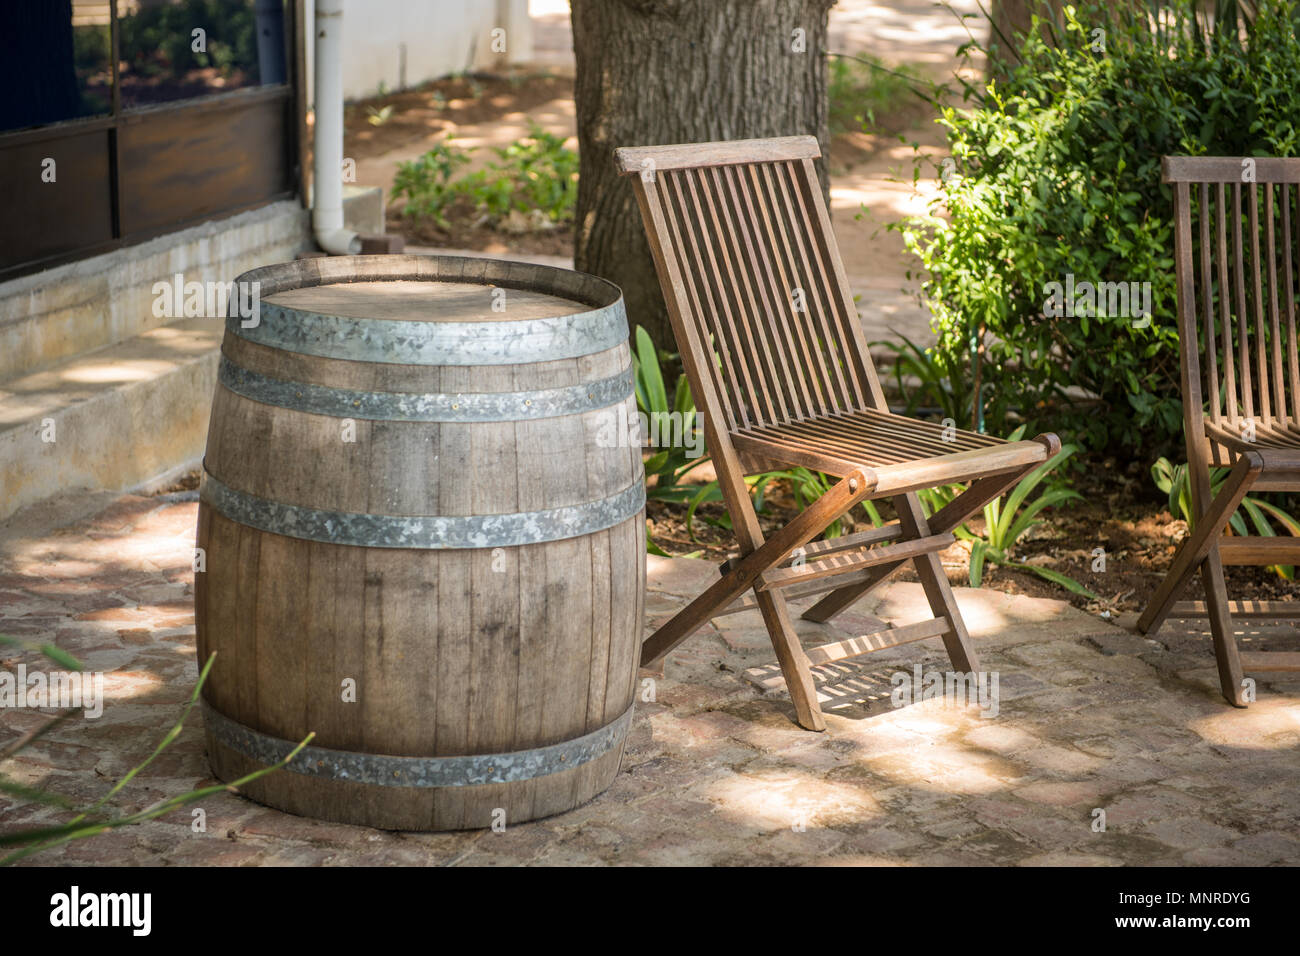 An empty wooden patio chair positioned next to barrel on patio cape town south africa